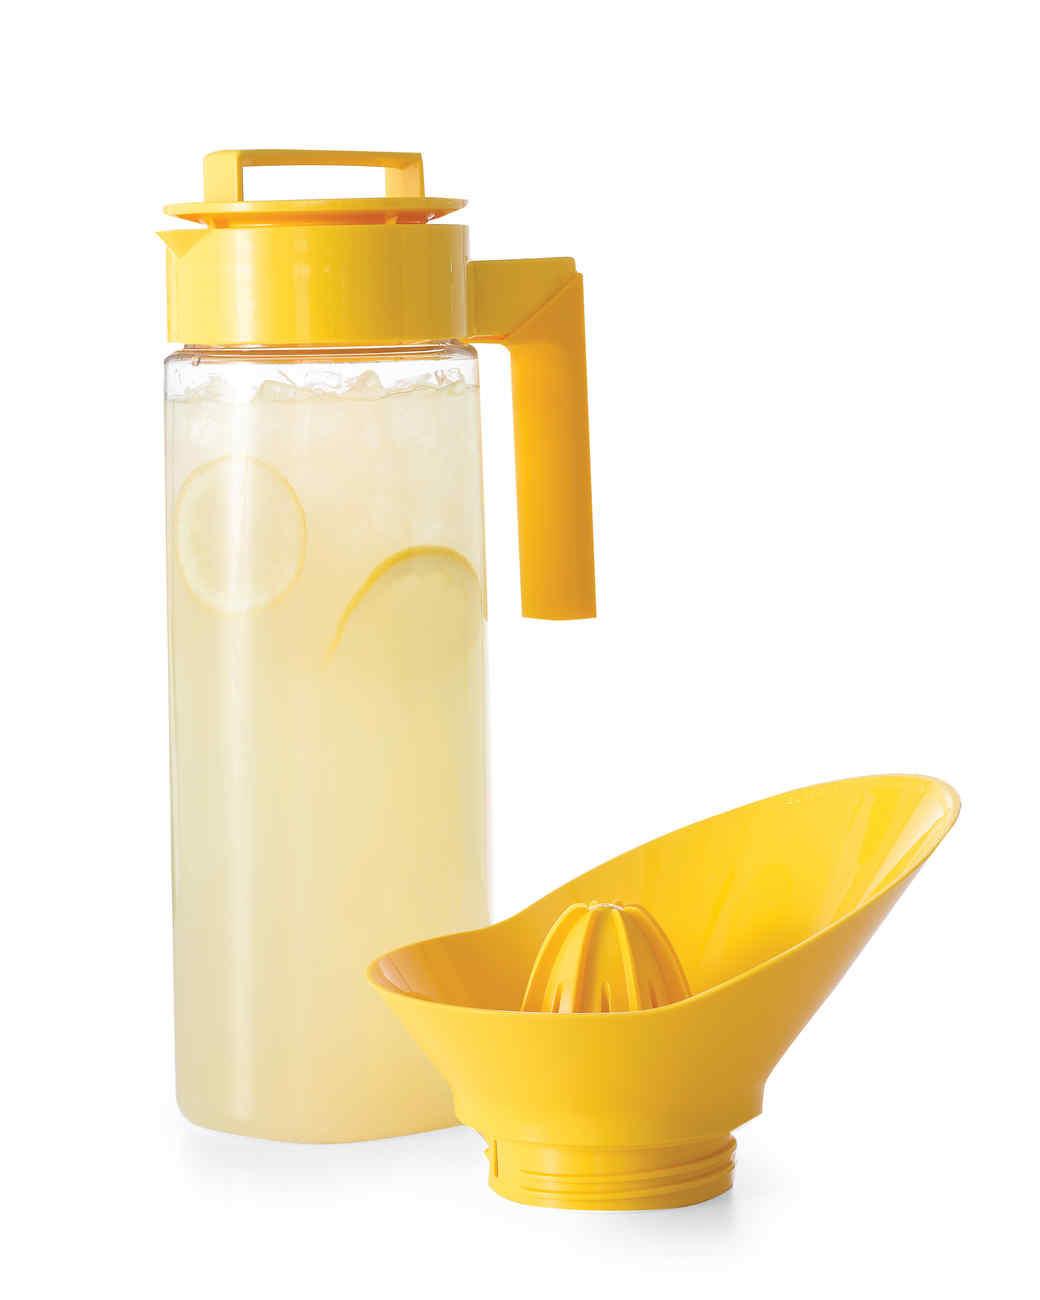 lemonade-finds-0811mld107422.jpg